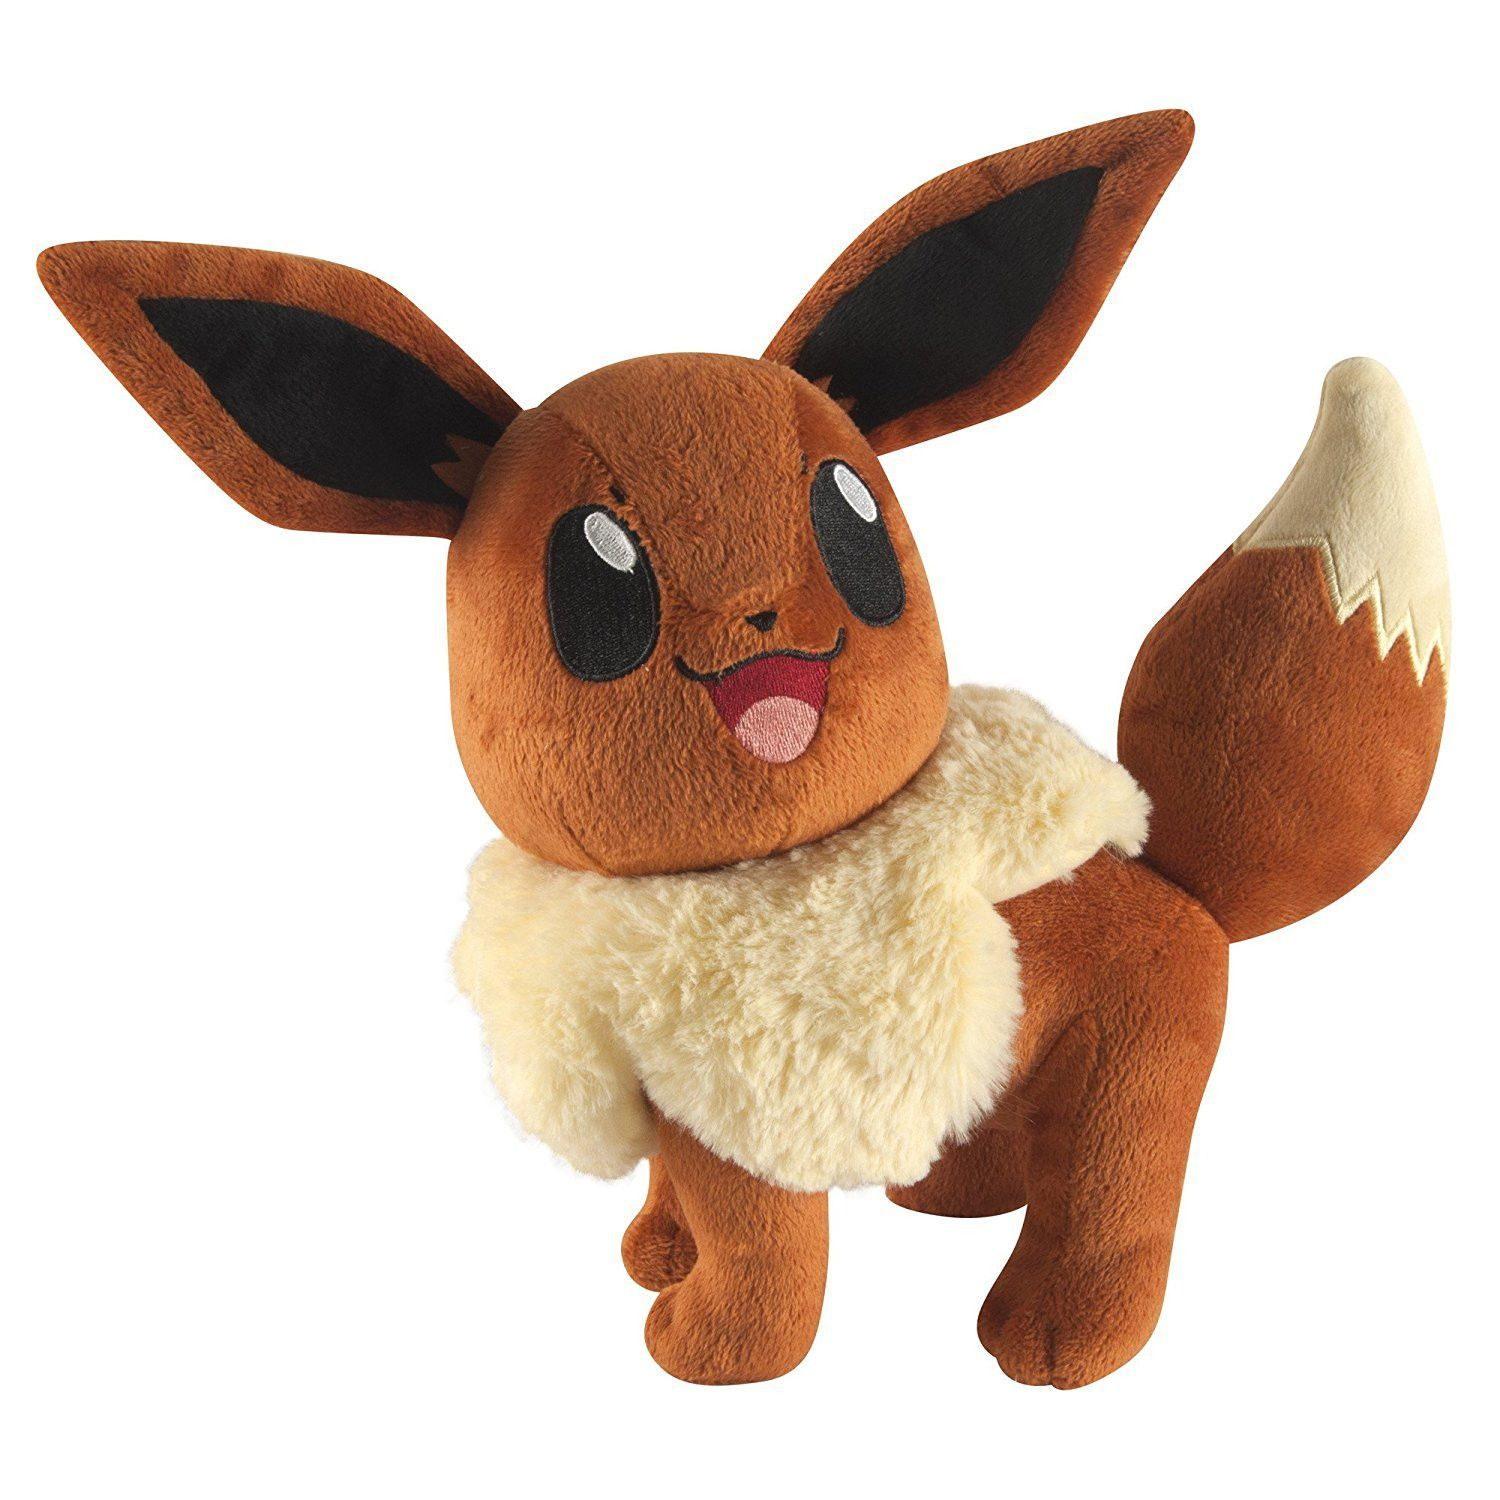 "Pokemon Large Eevee 9"" Plush Eevee plush, Pokemon plush"